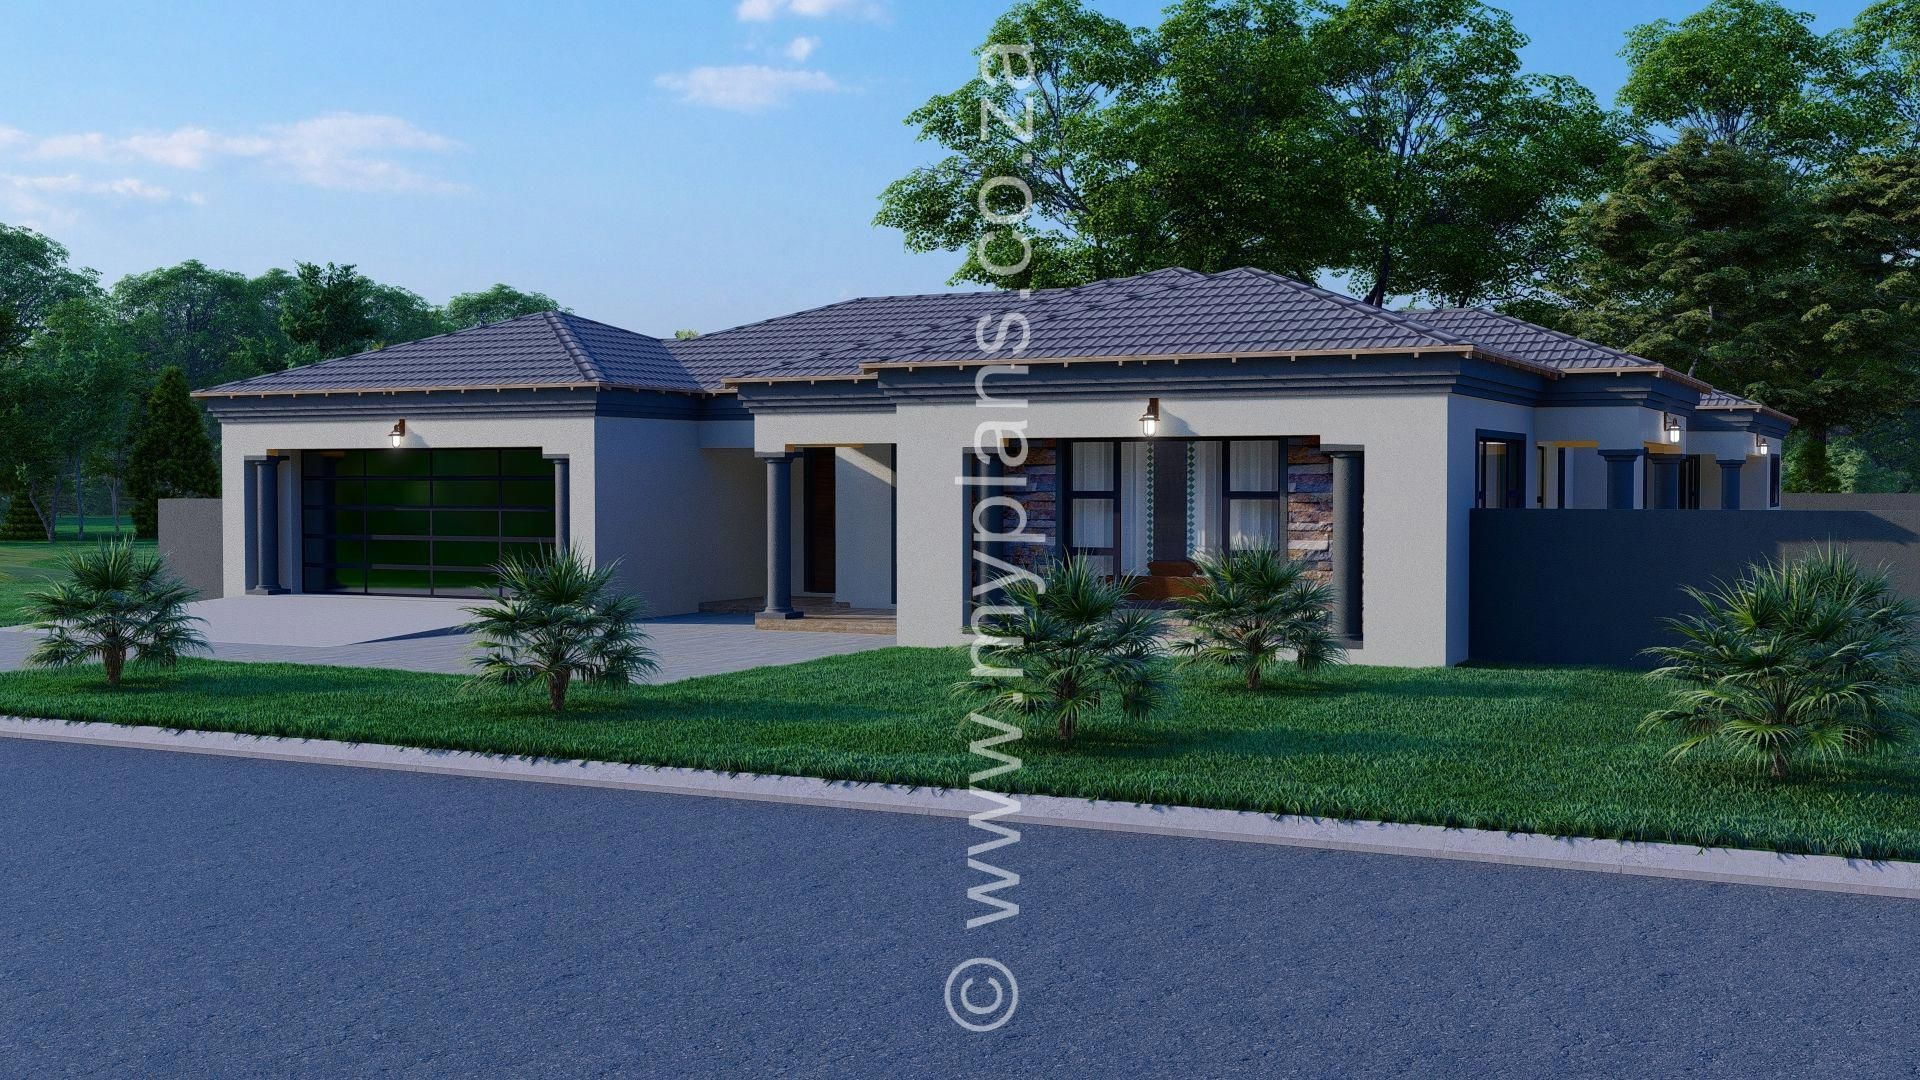 4 Bedroom House Plan Mlb 025s My Building Plans South Africa Rustickitchen Bedroom House Plans House Plans South Africa 4 Bedroom House Plans